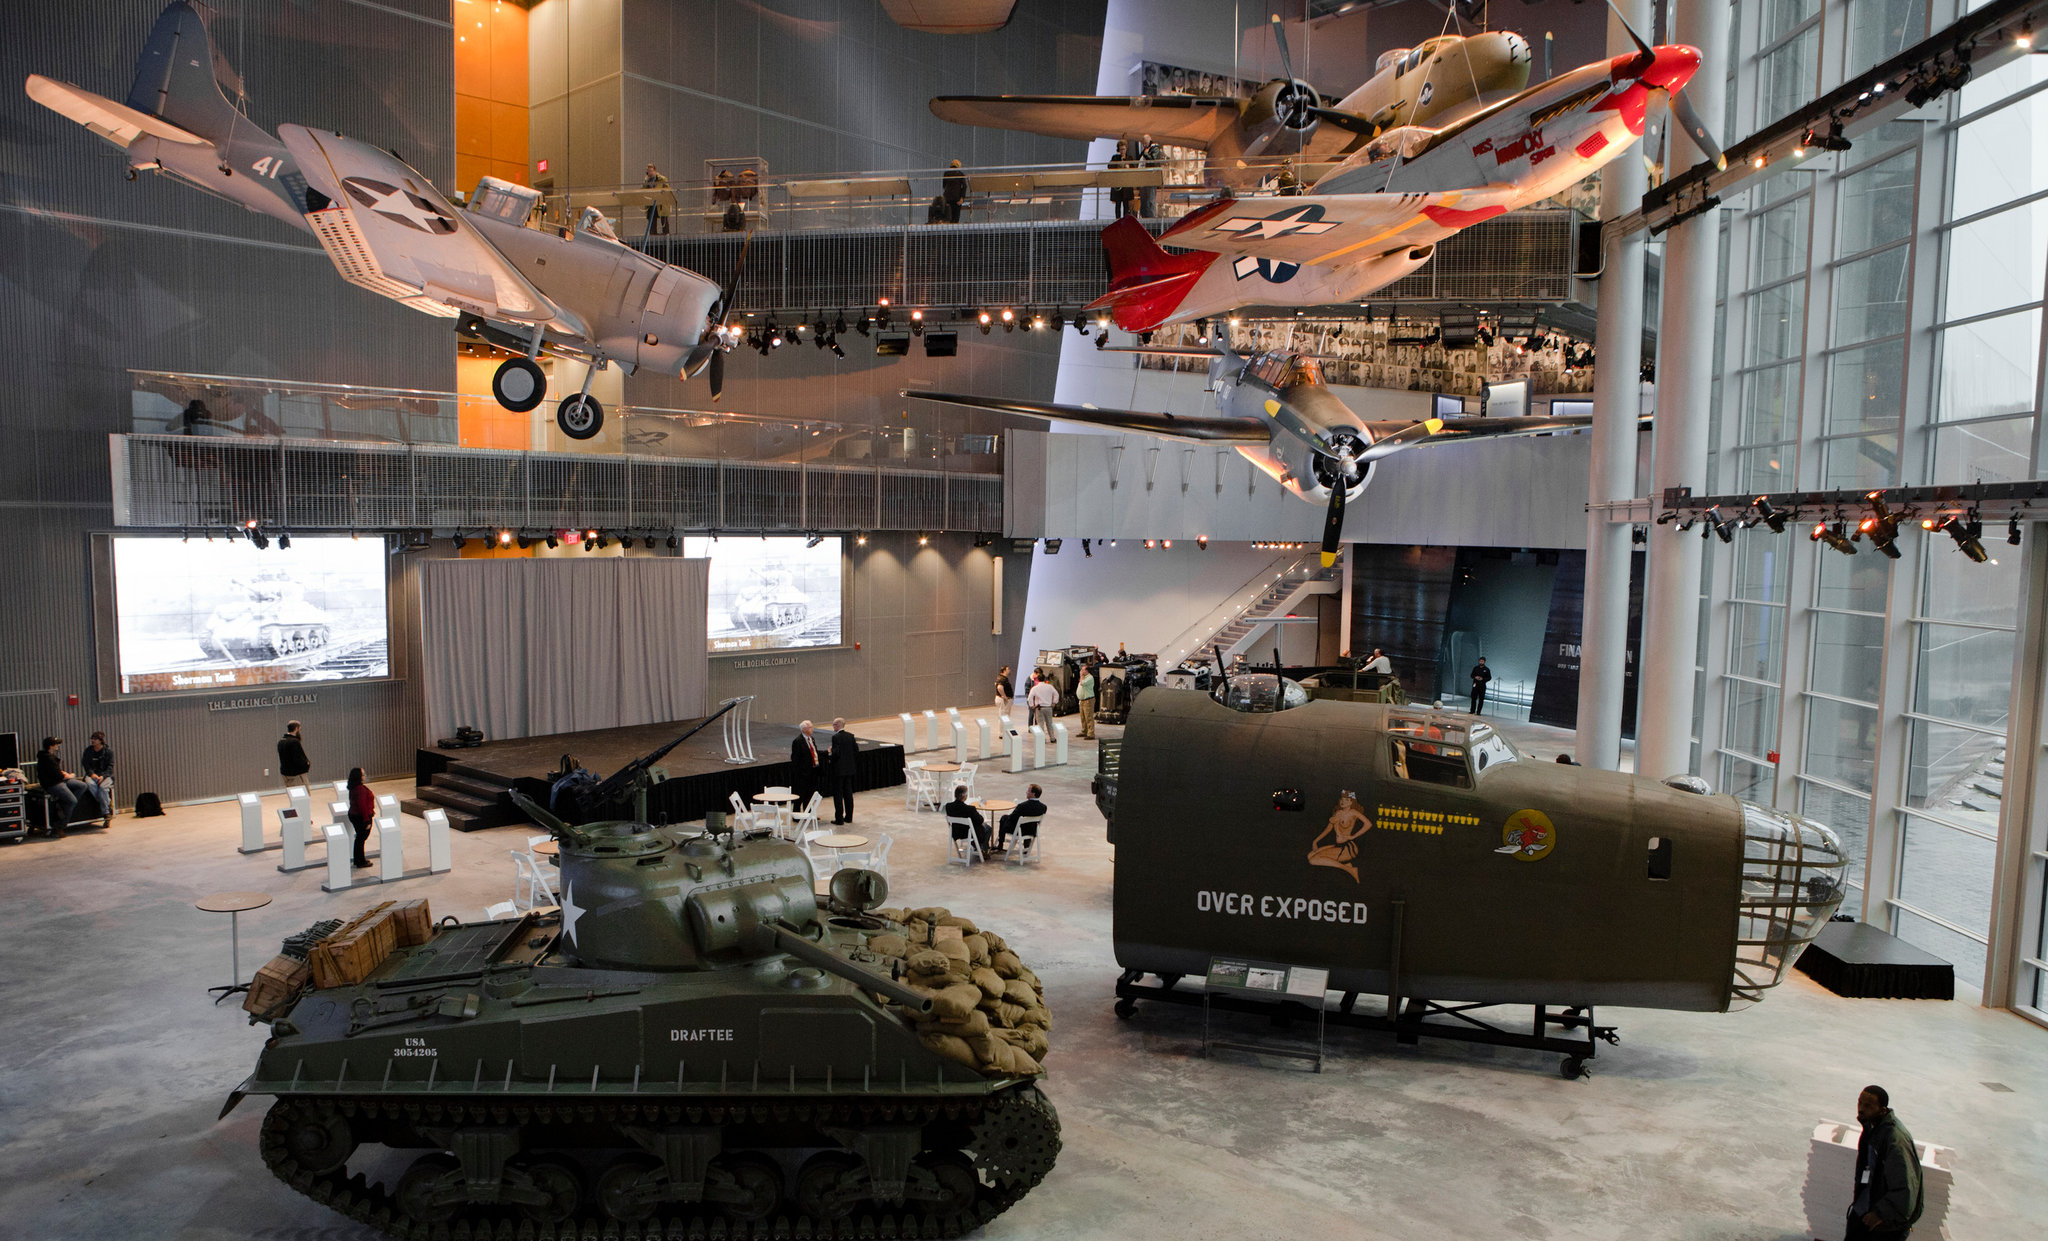 The National WWII Museum – New Orleans, La